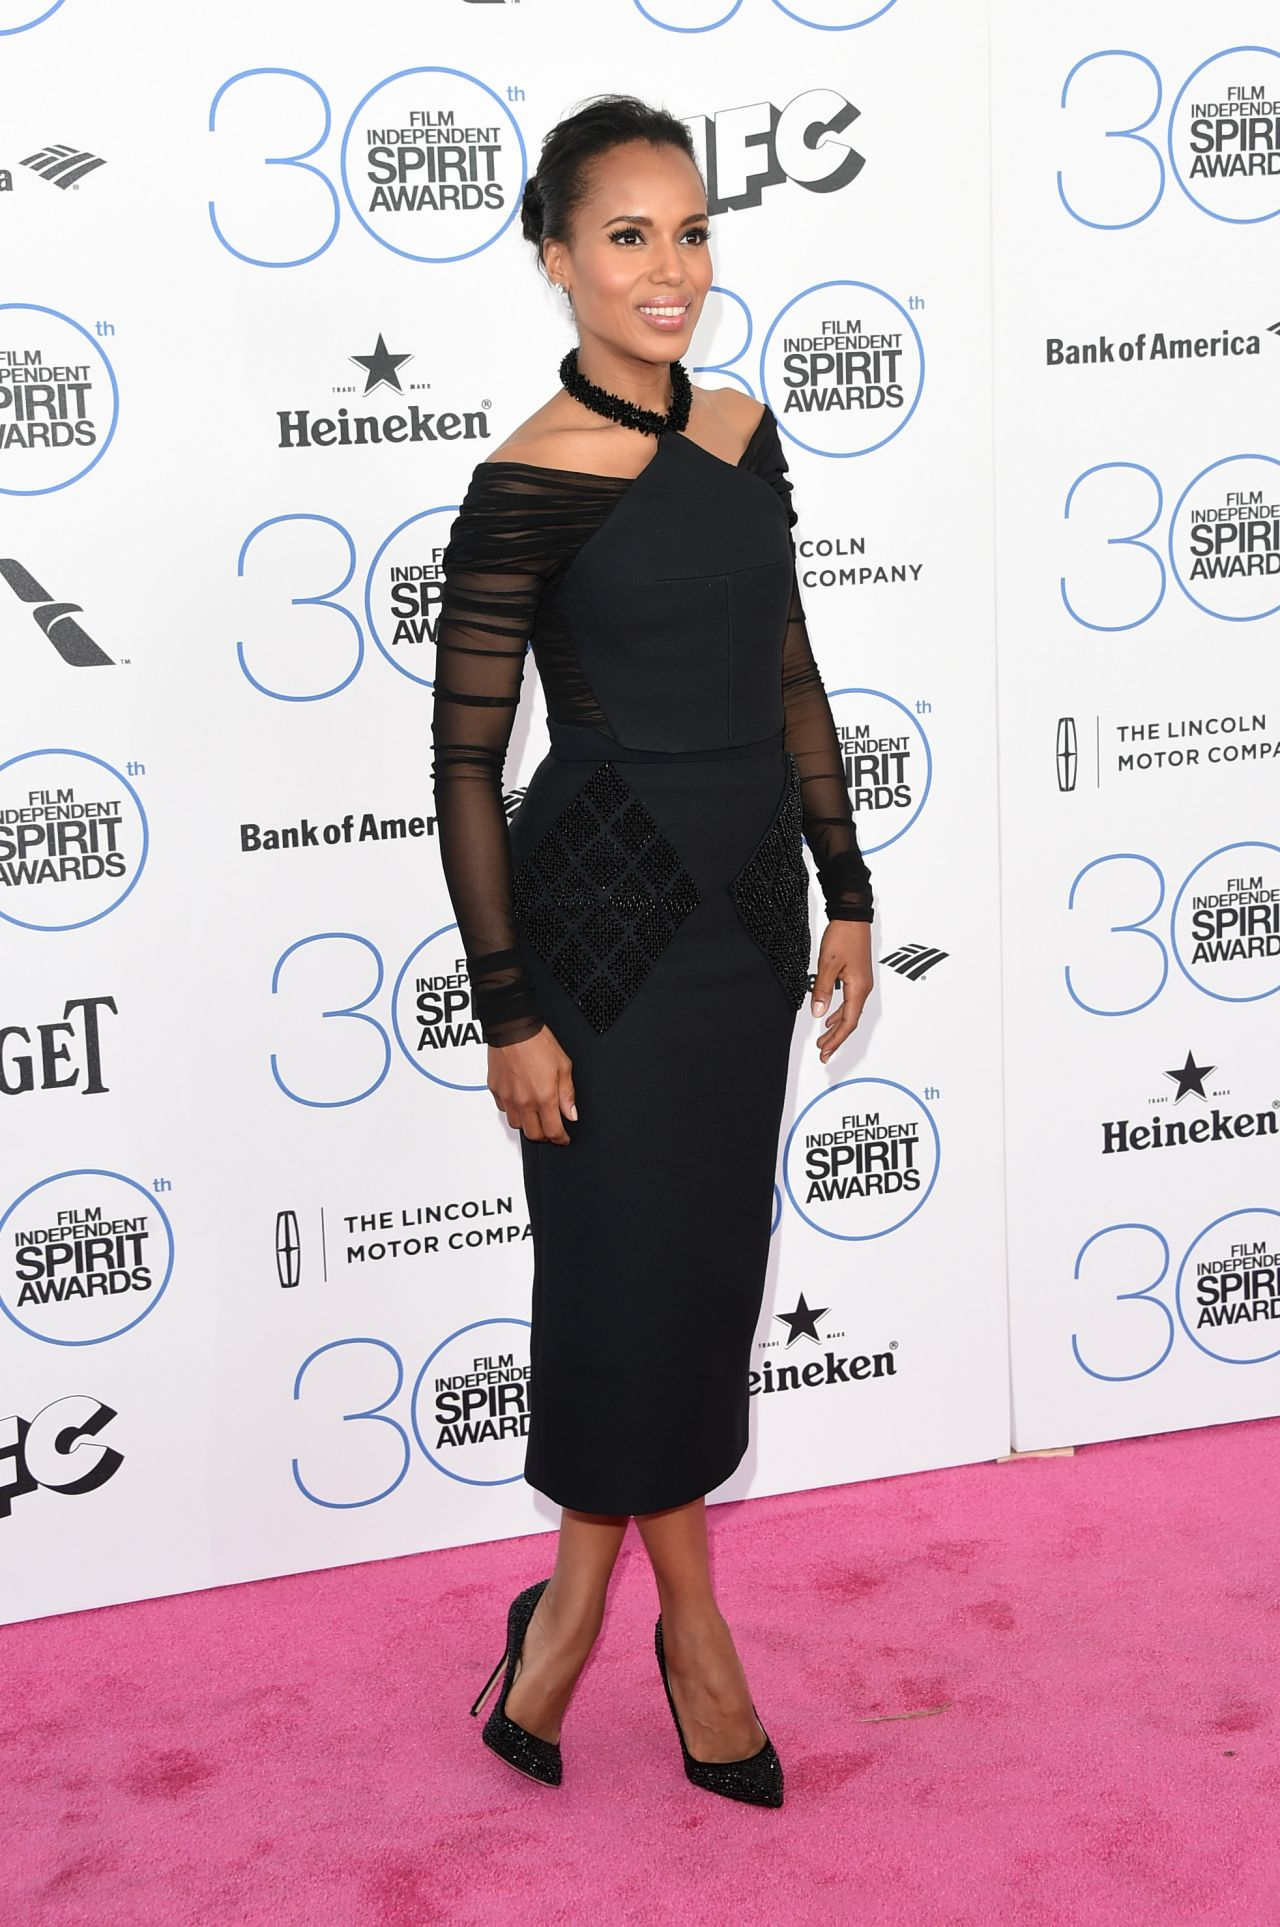 kerry-washington-2015-film-independent-spirit-awards-in-santa-monica_9